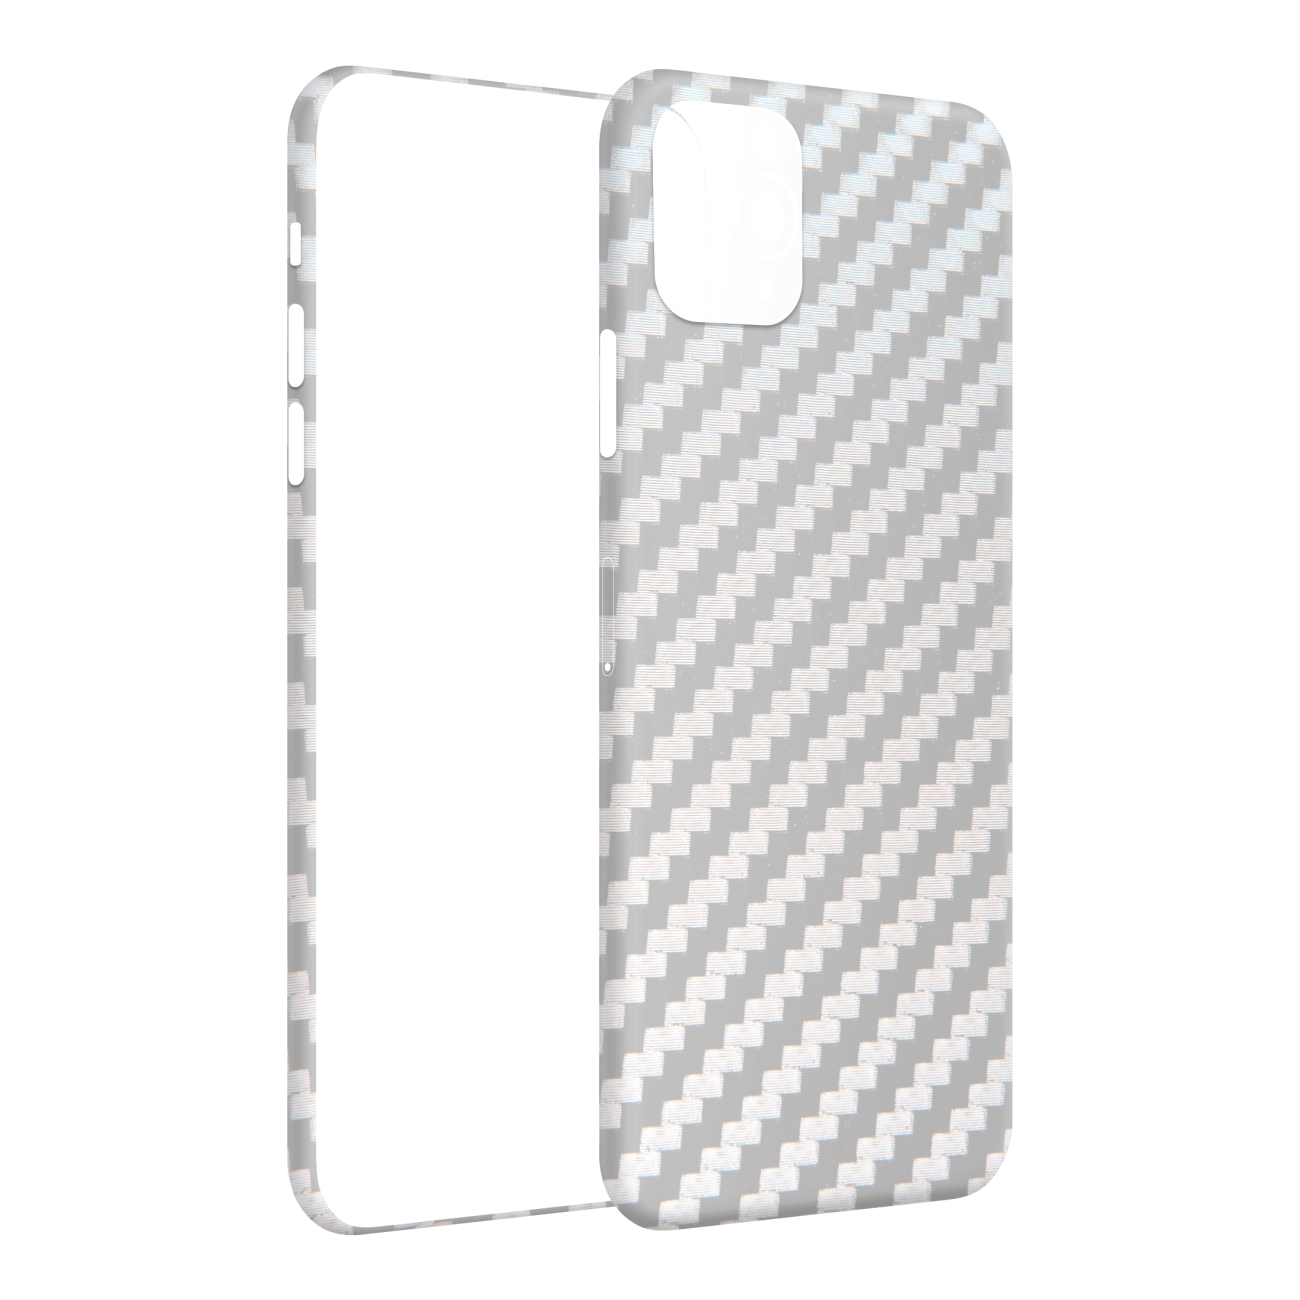 iphone-11-pro-skin_full-skin_white-carbon.png